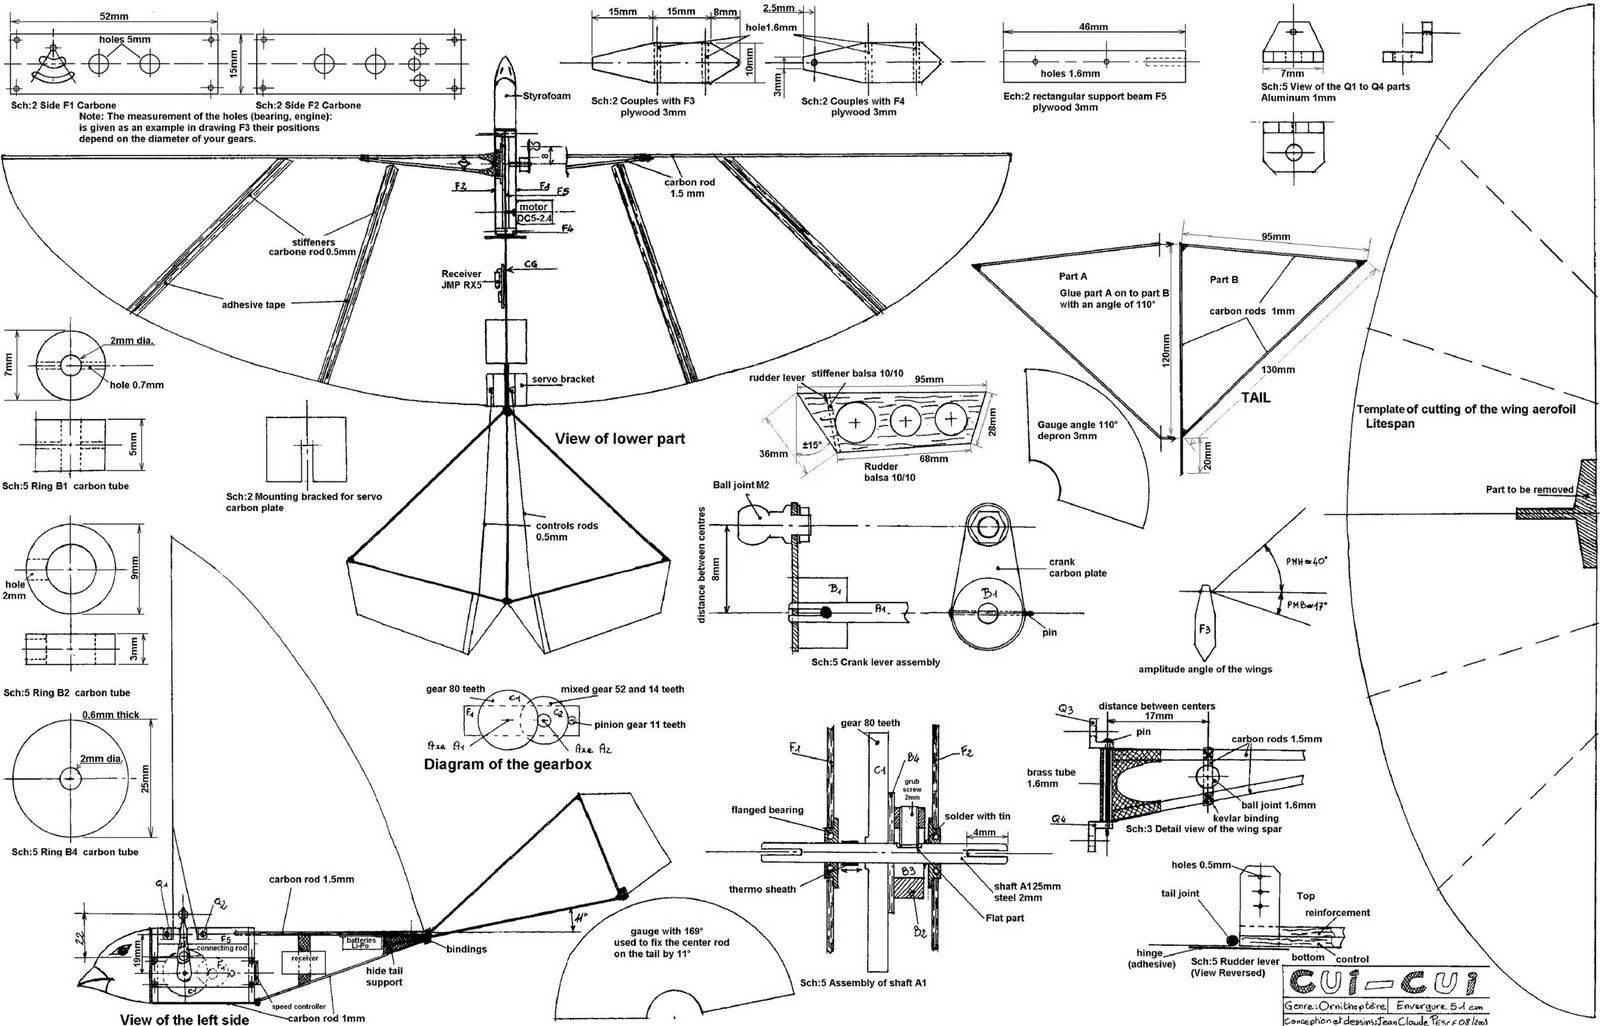 rc ornithopter plan jpg  1600 u00d71026